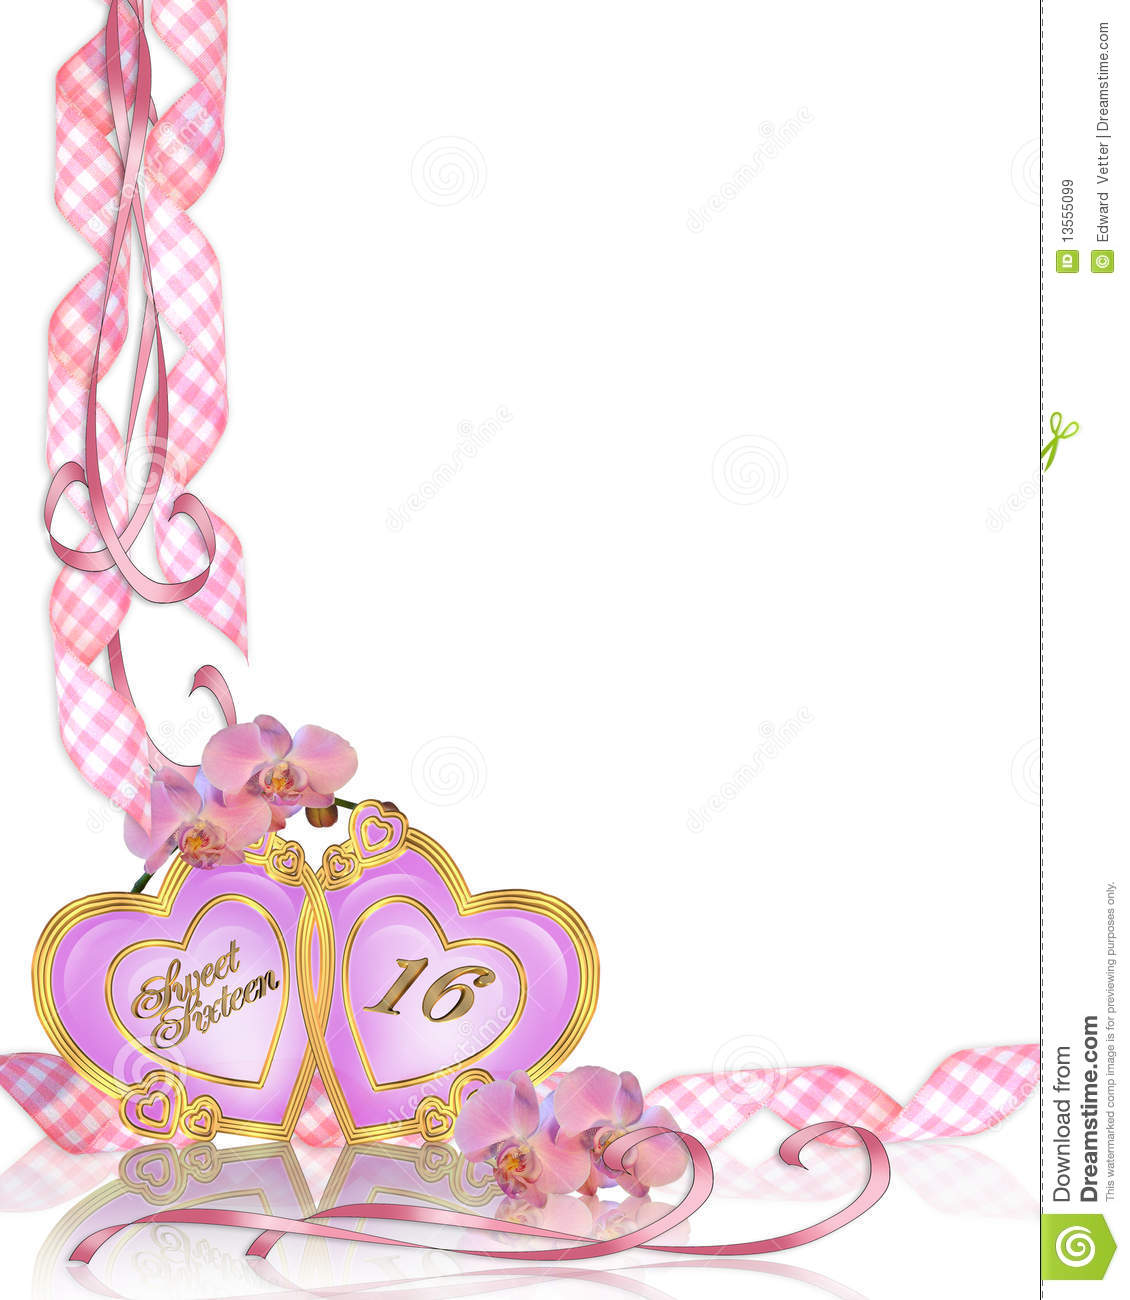 Image And Illustration Composition Of Pink Orchids For Sweet 16 Birthday Party Invitation Template With Copy Space